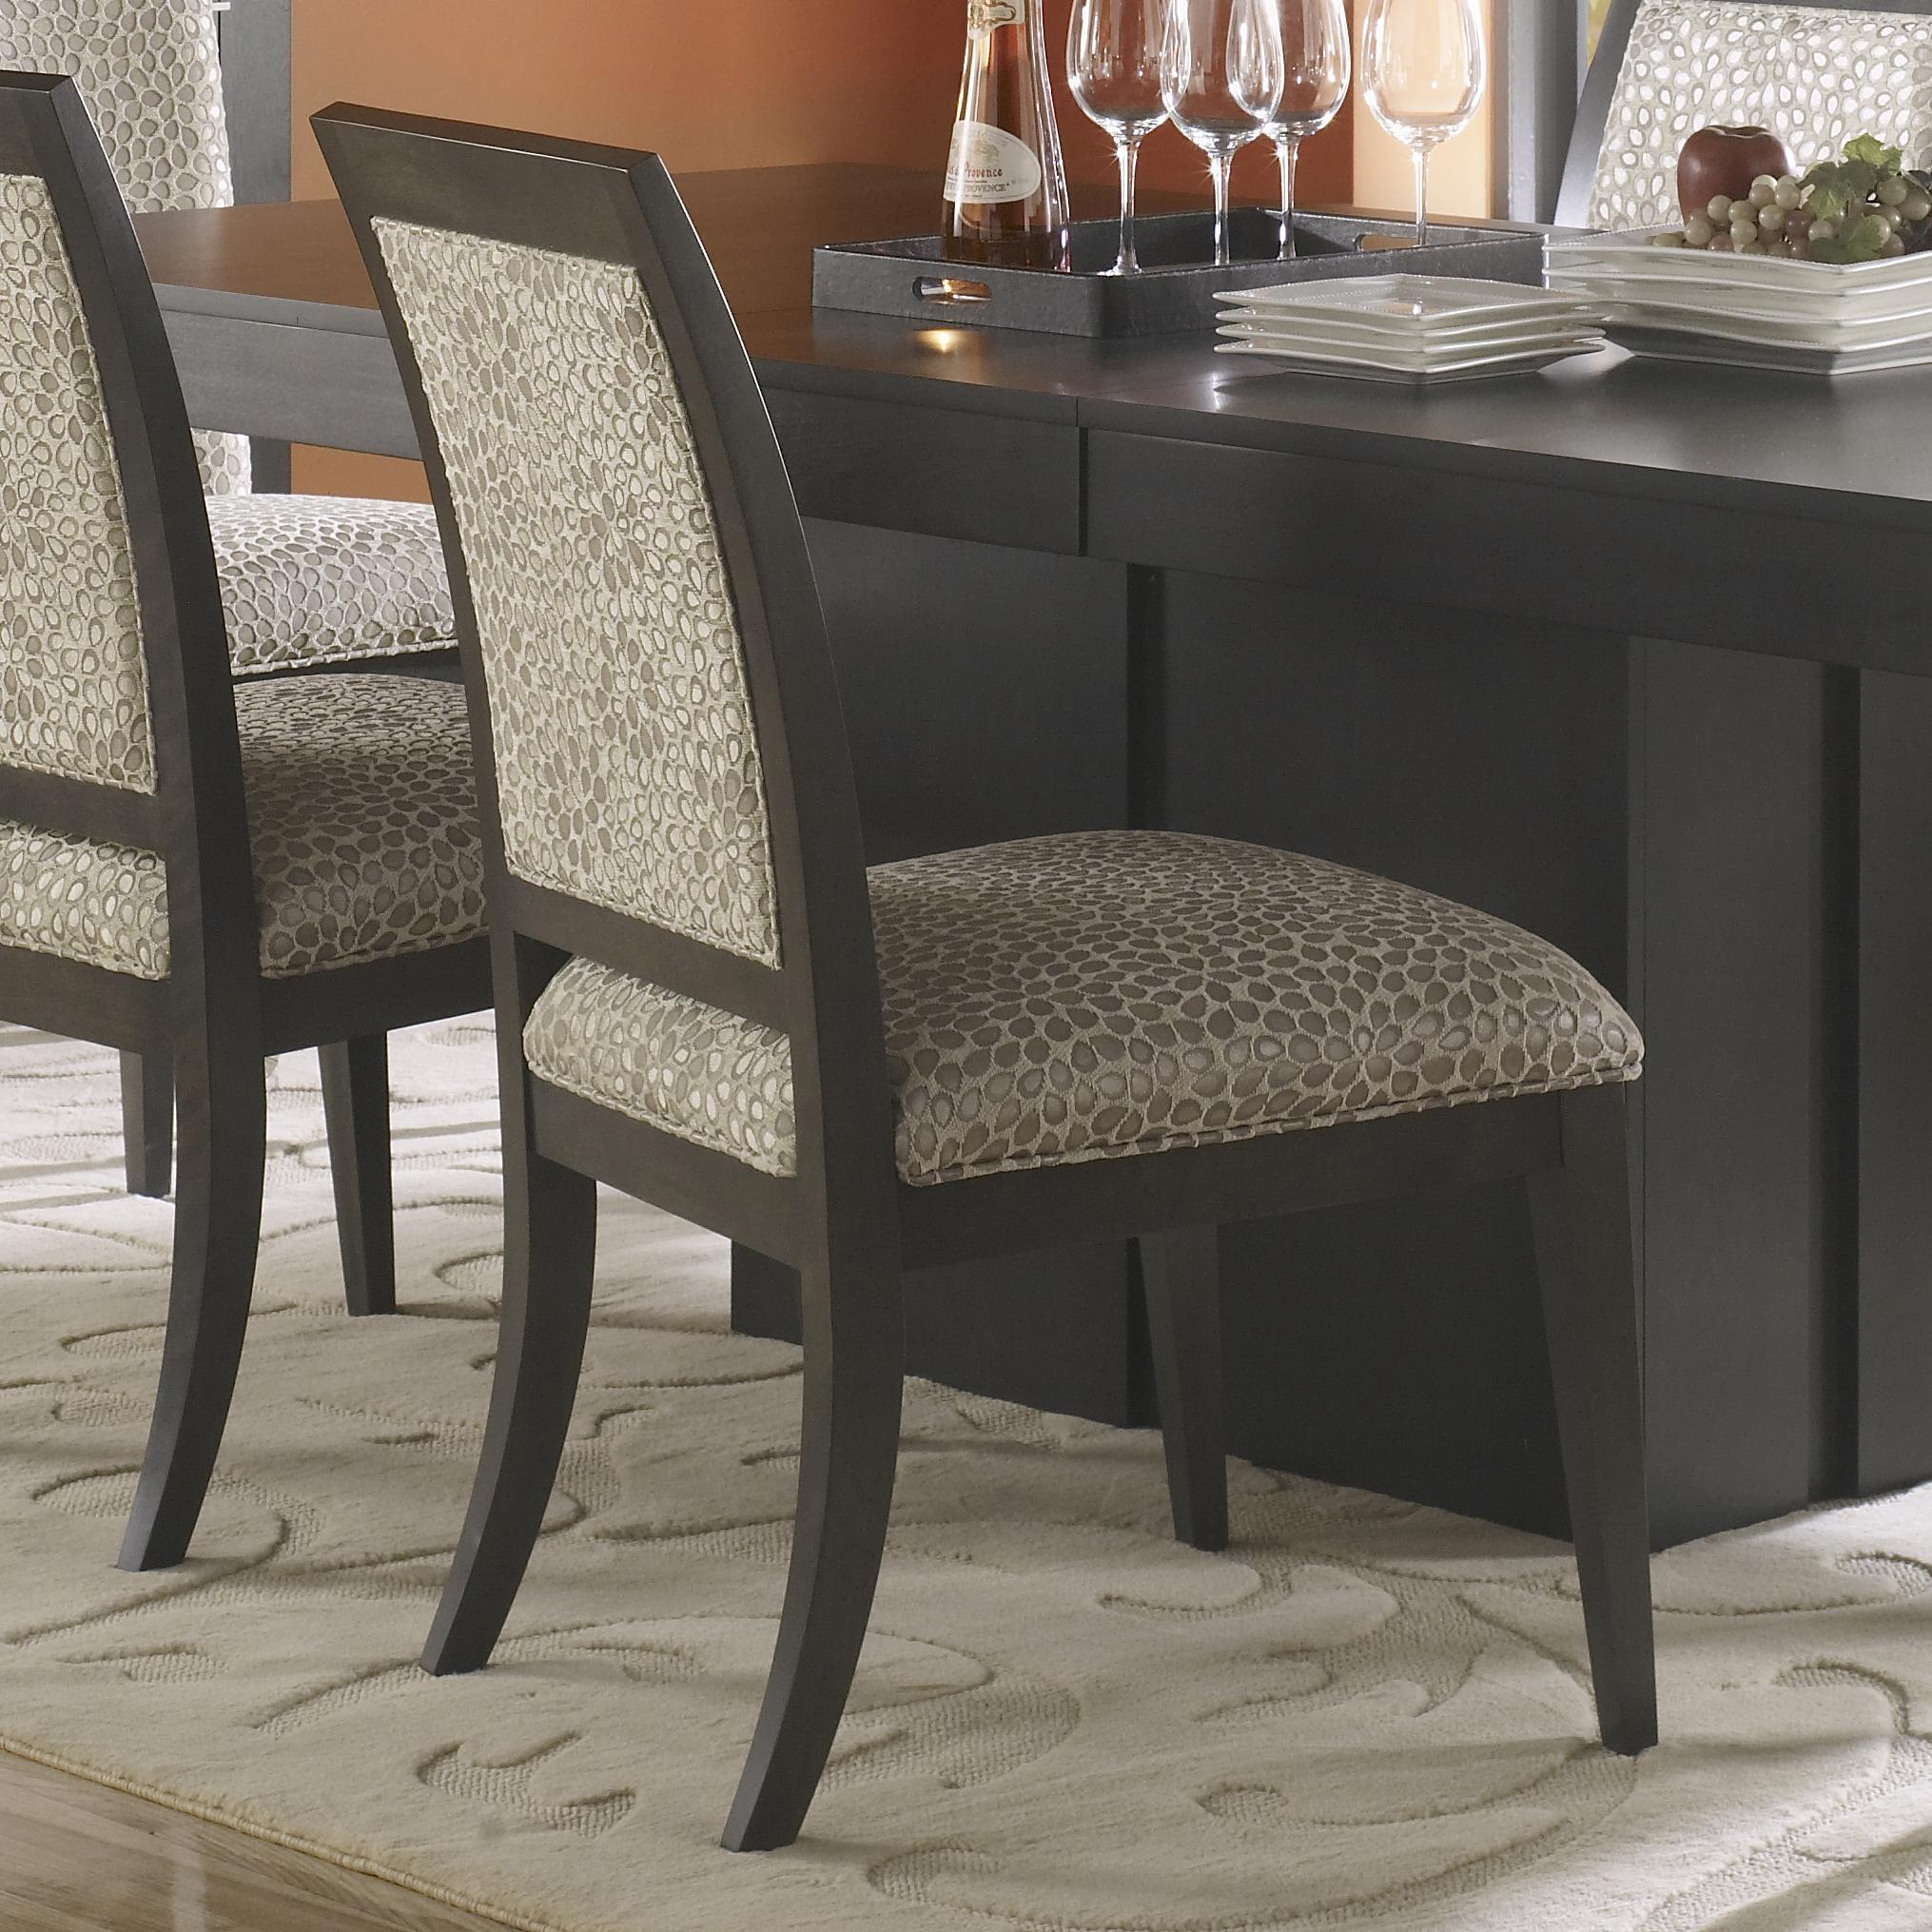 Canadel High Style - Custom Dining <b>Customizable</b> Upholstered Side Chair - Item Number: CHA05010RF59MNA